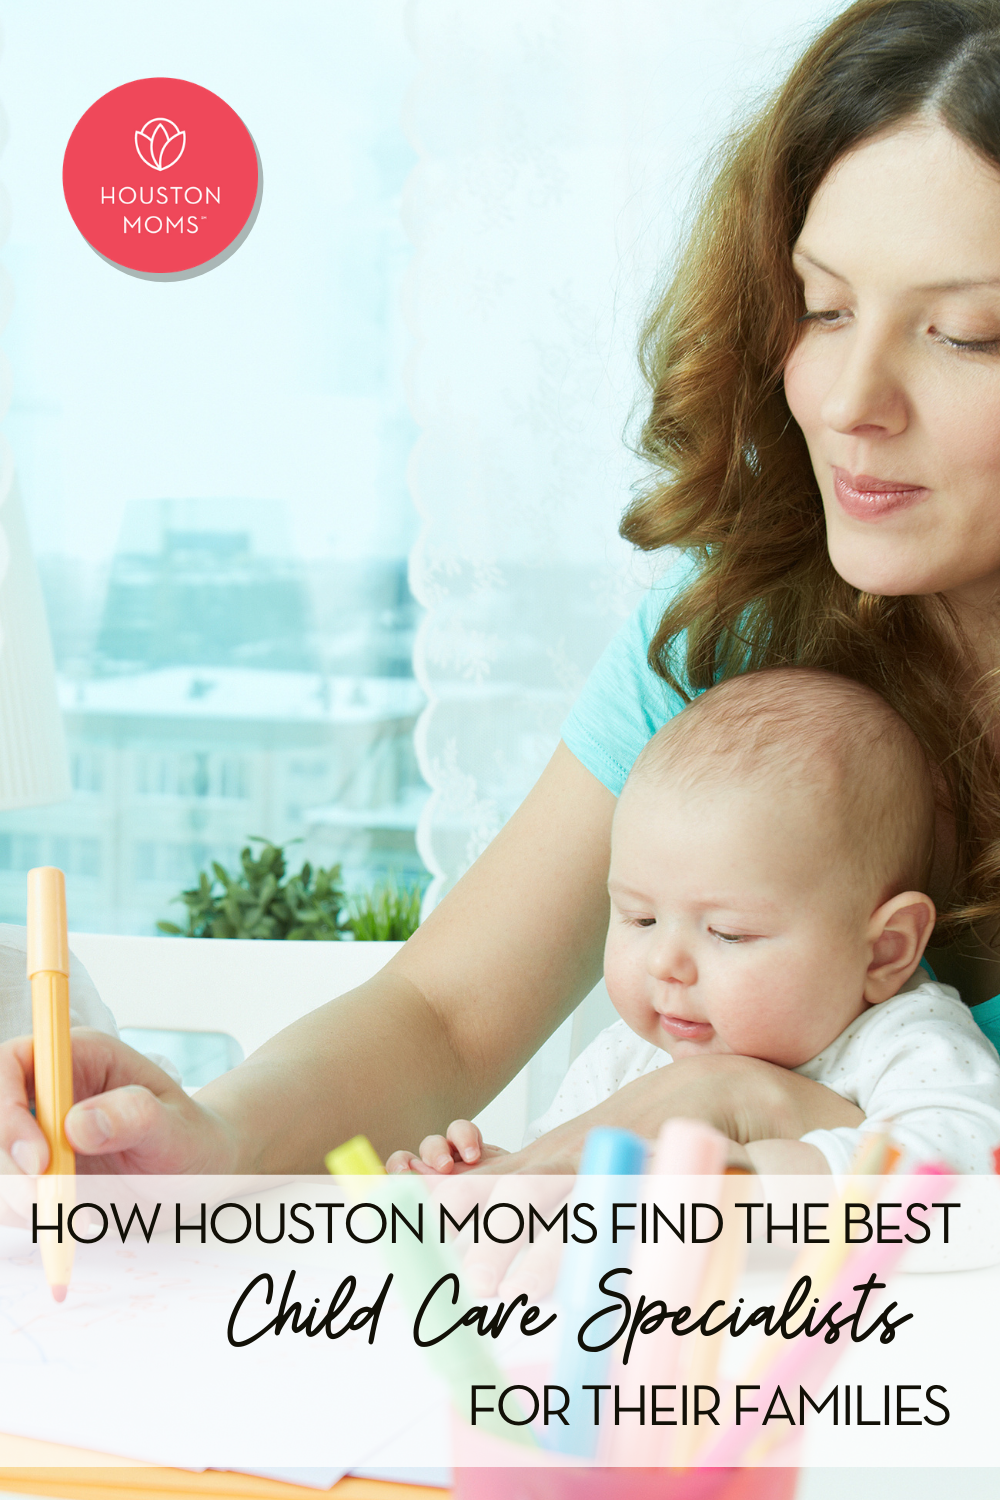 "Houston Moms ""How Houston Moms Find the Best Child Care Specialists for their Families"" #houstonmoms #houstonmomsblog #momsaroundhouston"